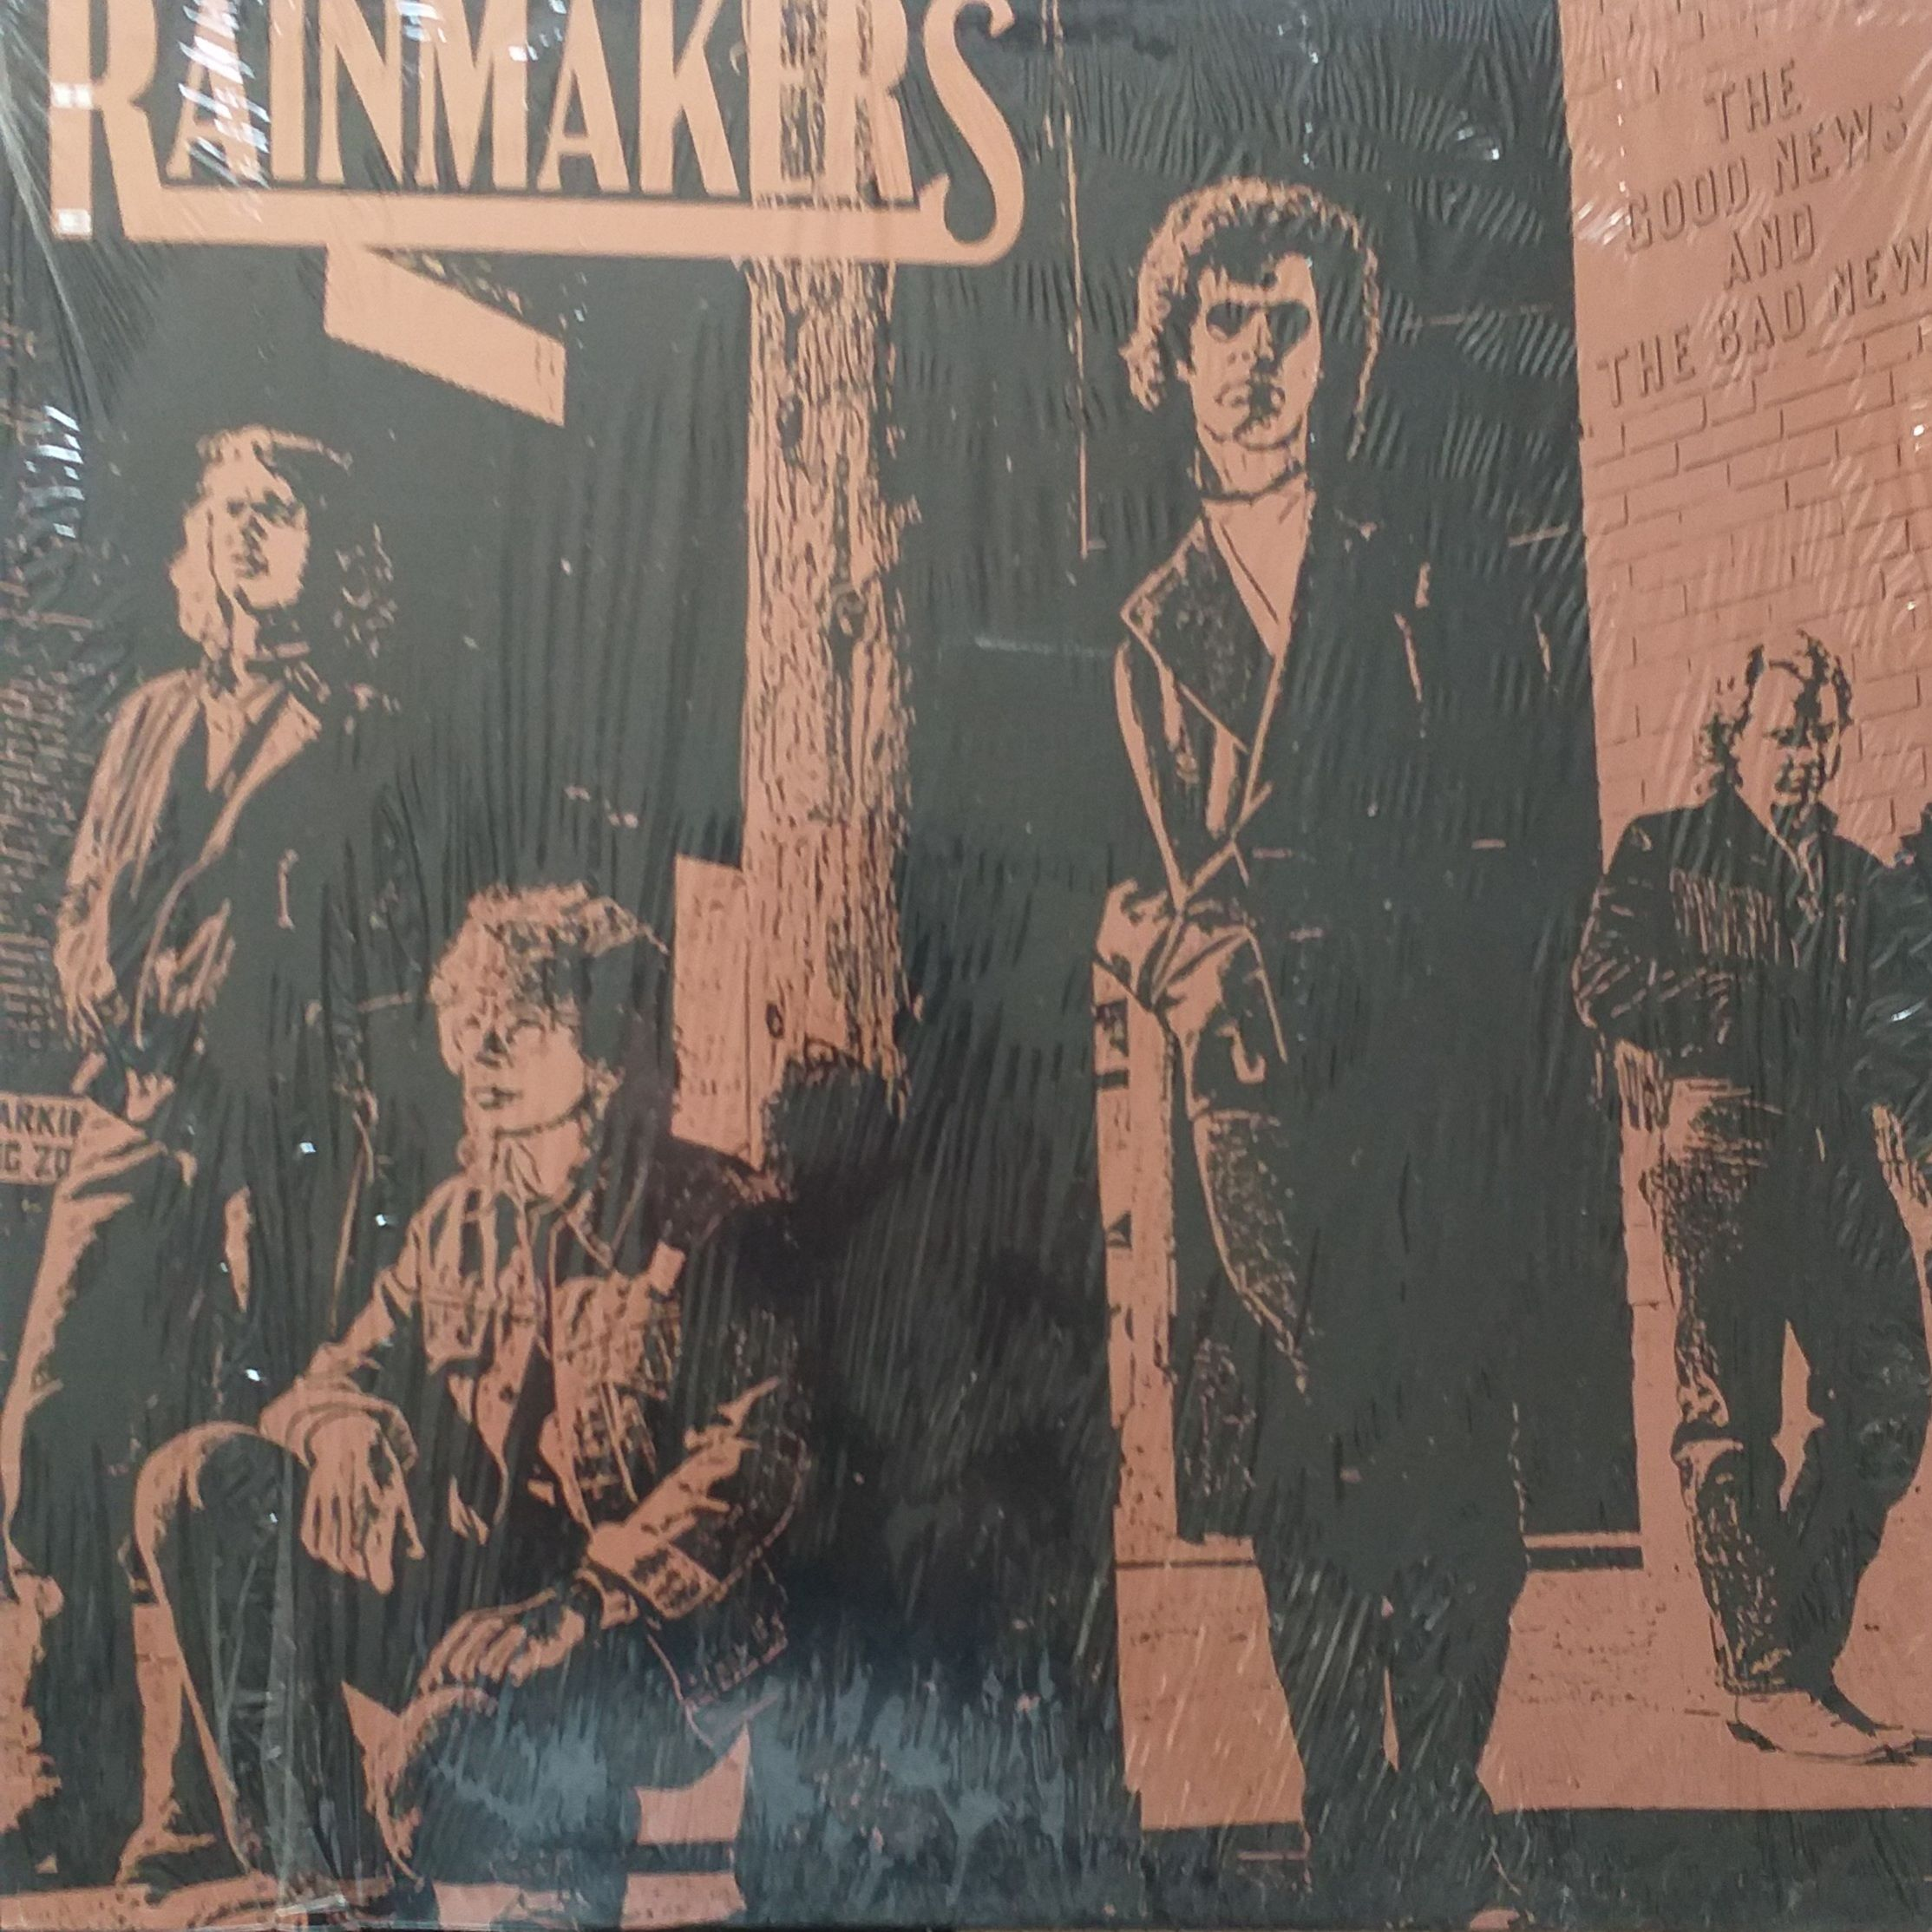 The Rainmakers The good news and the bad news LP undefined